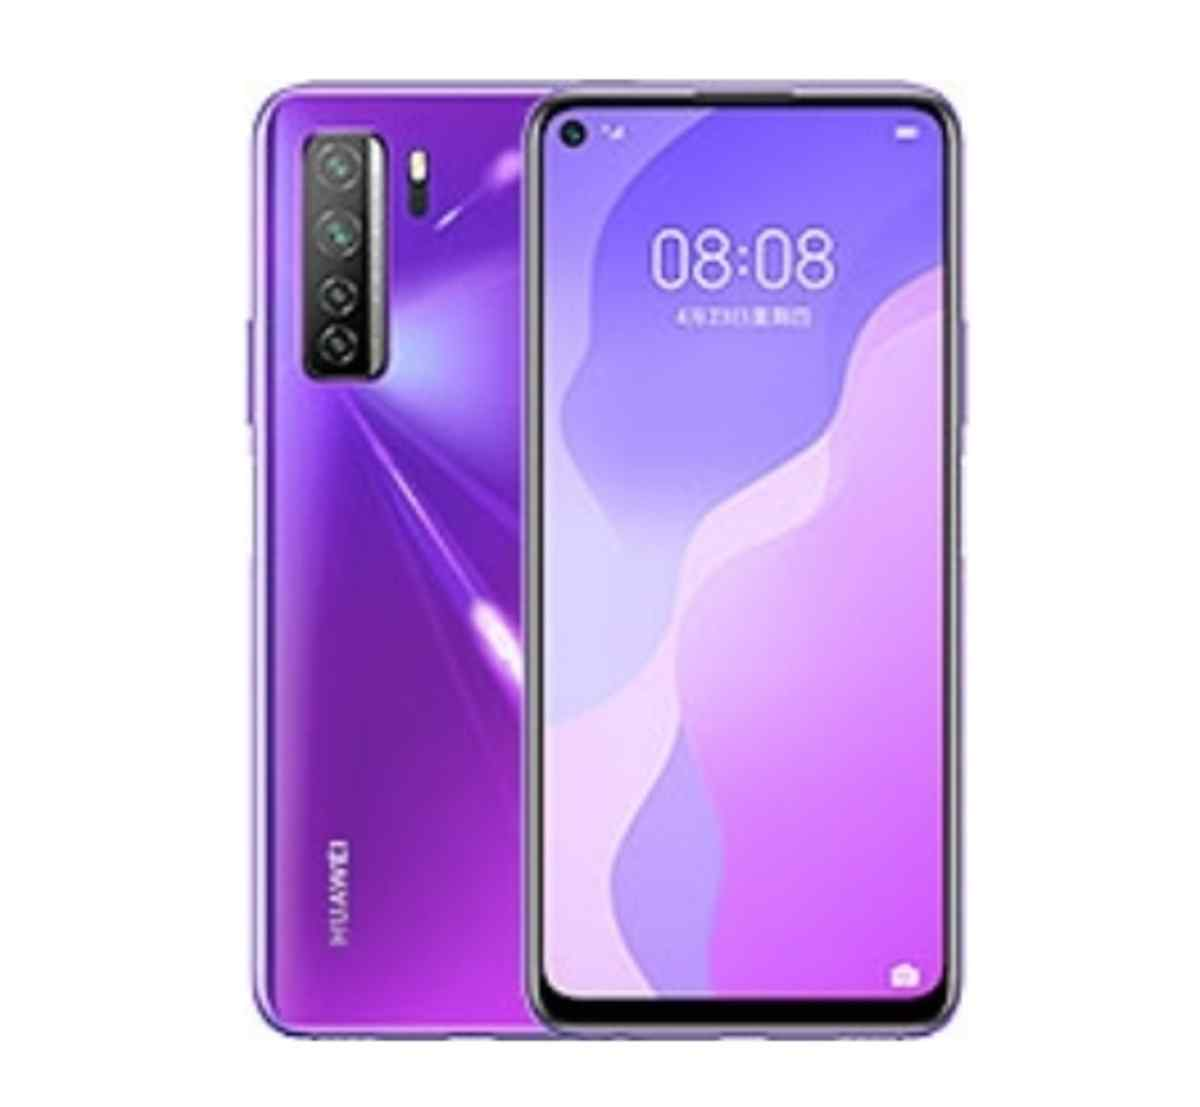 Huawei nova 7 SE price in Nigeria, Huawei nova 7 SE, price of huawei nova 7 se in nigeria, huawei nova 7 se specs and price, how much is huawei nova 7 se in nigeria, huawei nova 7 se specs, huawei nova 7 se price, huawei nova 7 se in nigeria